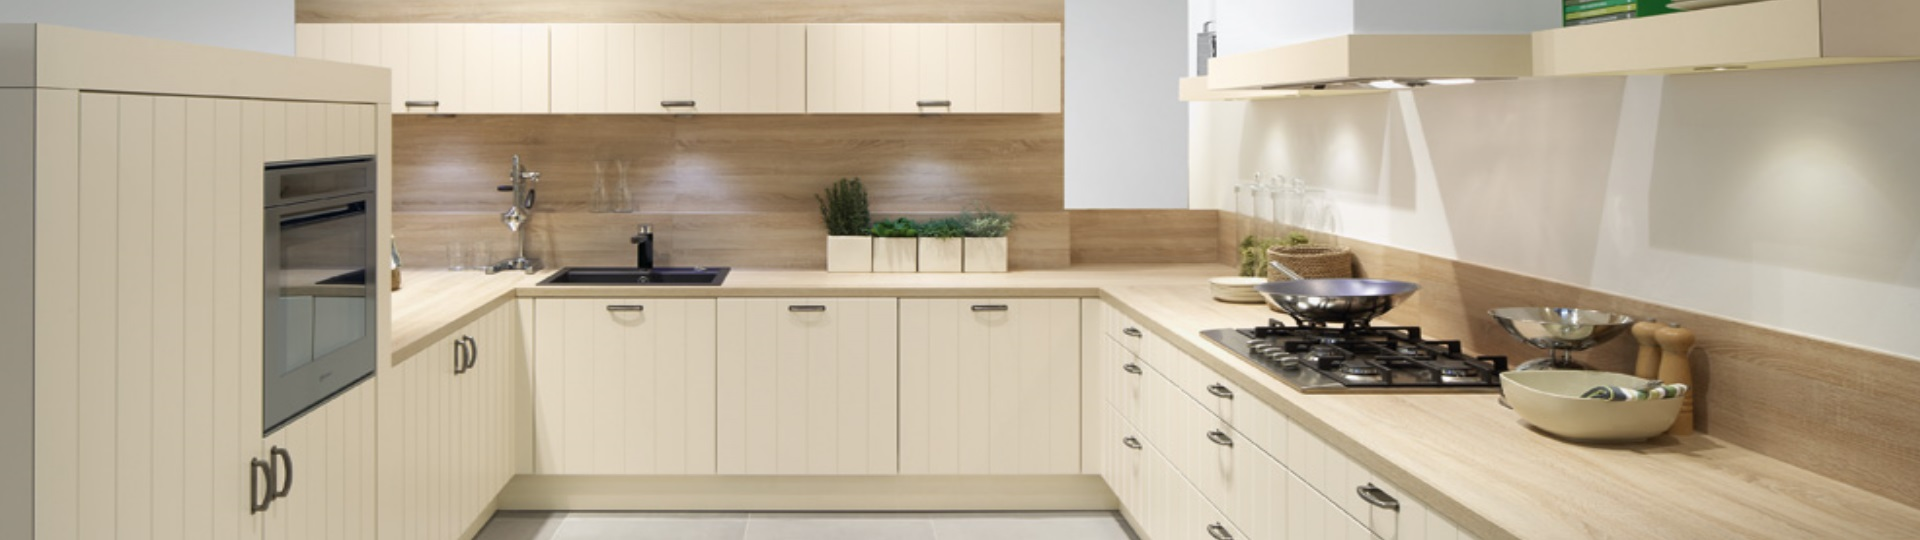 Kitchen Installation Bristol, Bristol Kitchen Installers